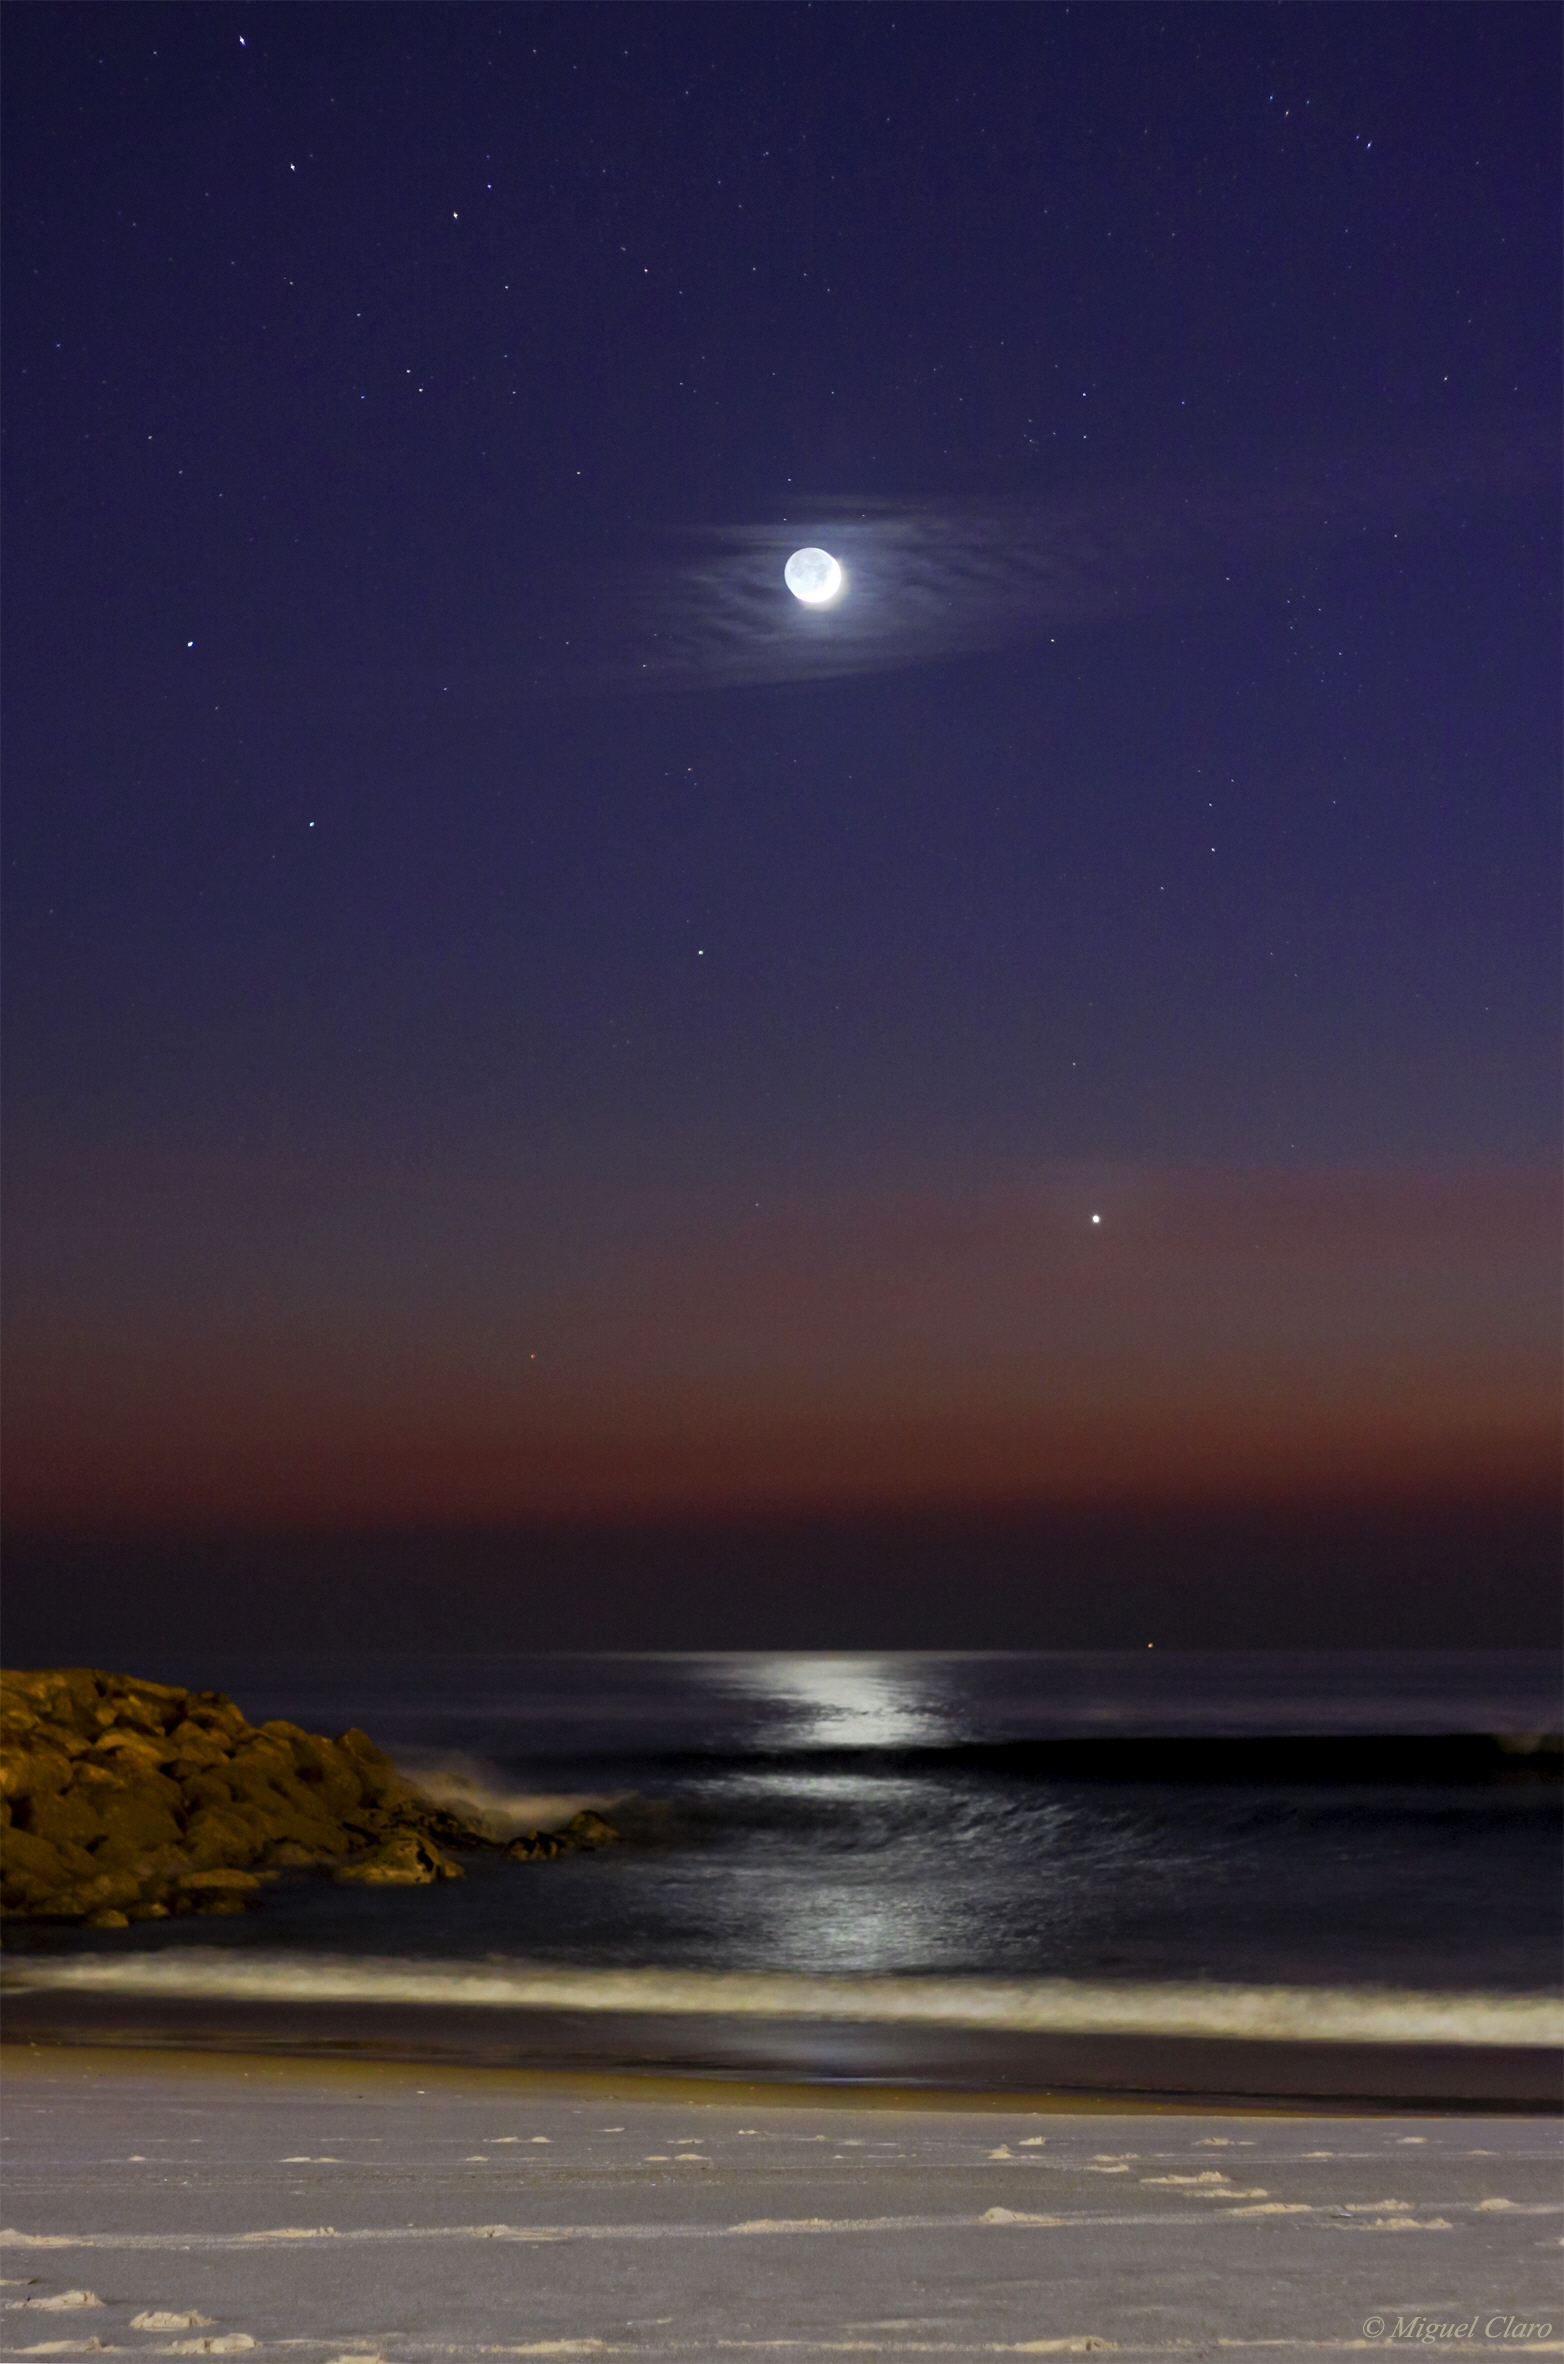 <h5>Crescent Moon and Venus at the Ocean</h5>